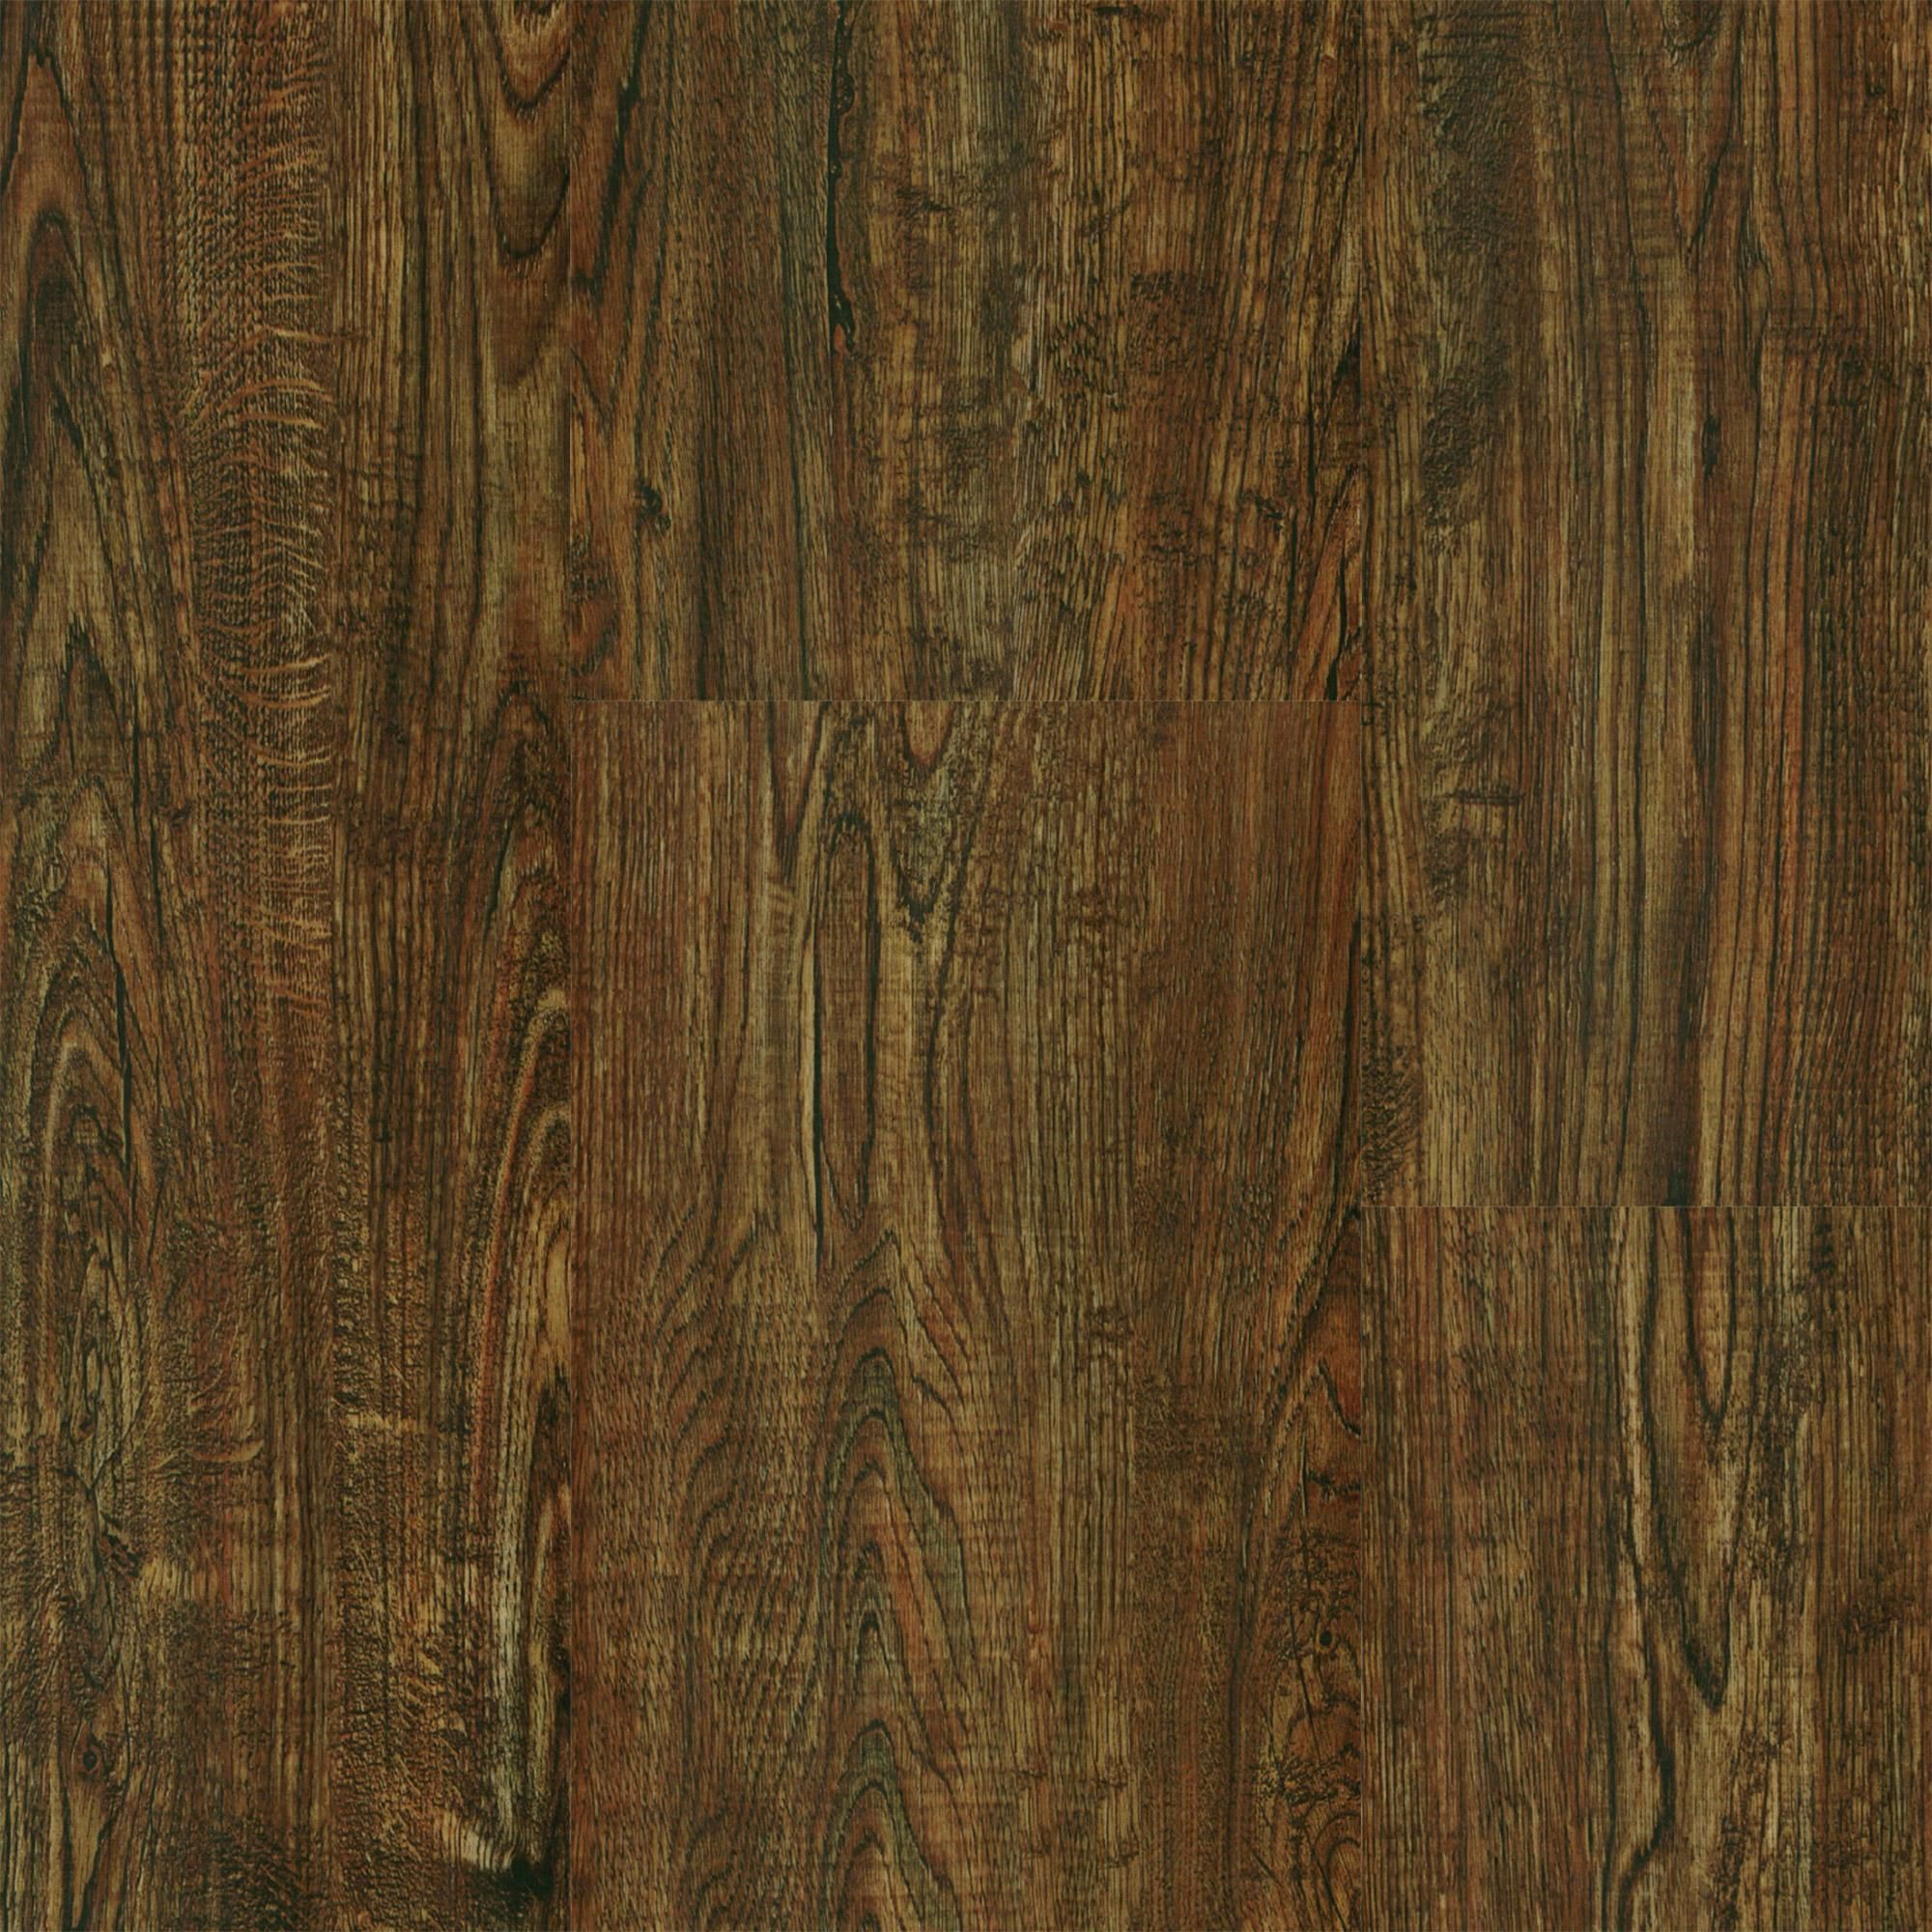 Supreme Elite Freedom Gold Series Imperial Chestnut Waterproof Loose Lay Vinyl Plank Flooring Loose Lay Vinyl Planks Vinyl Plank Flooring Loose Lay Vinyl